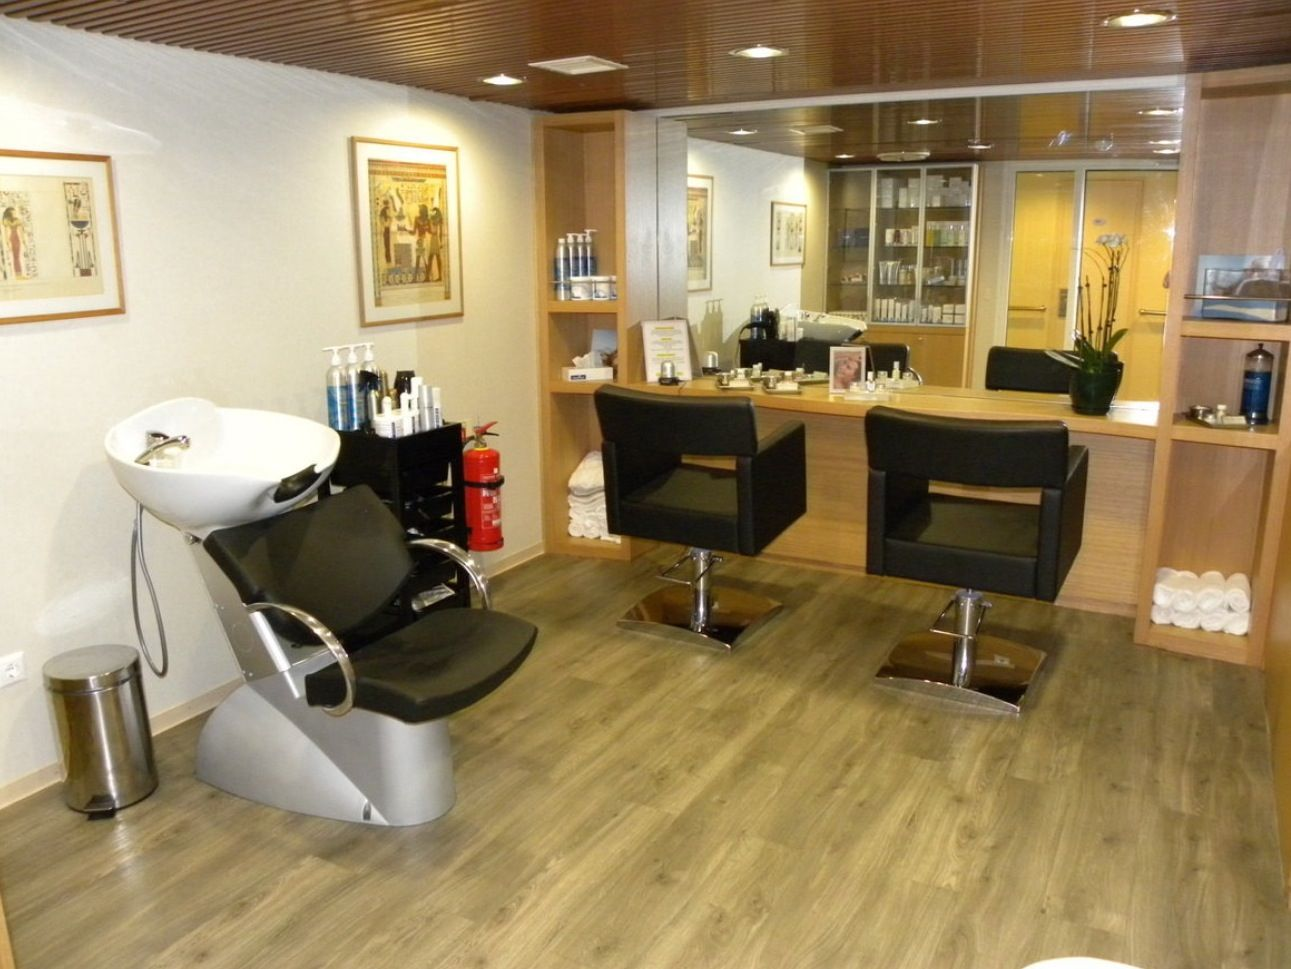 salon interior - Salon Design Ideas